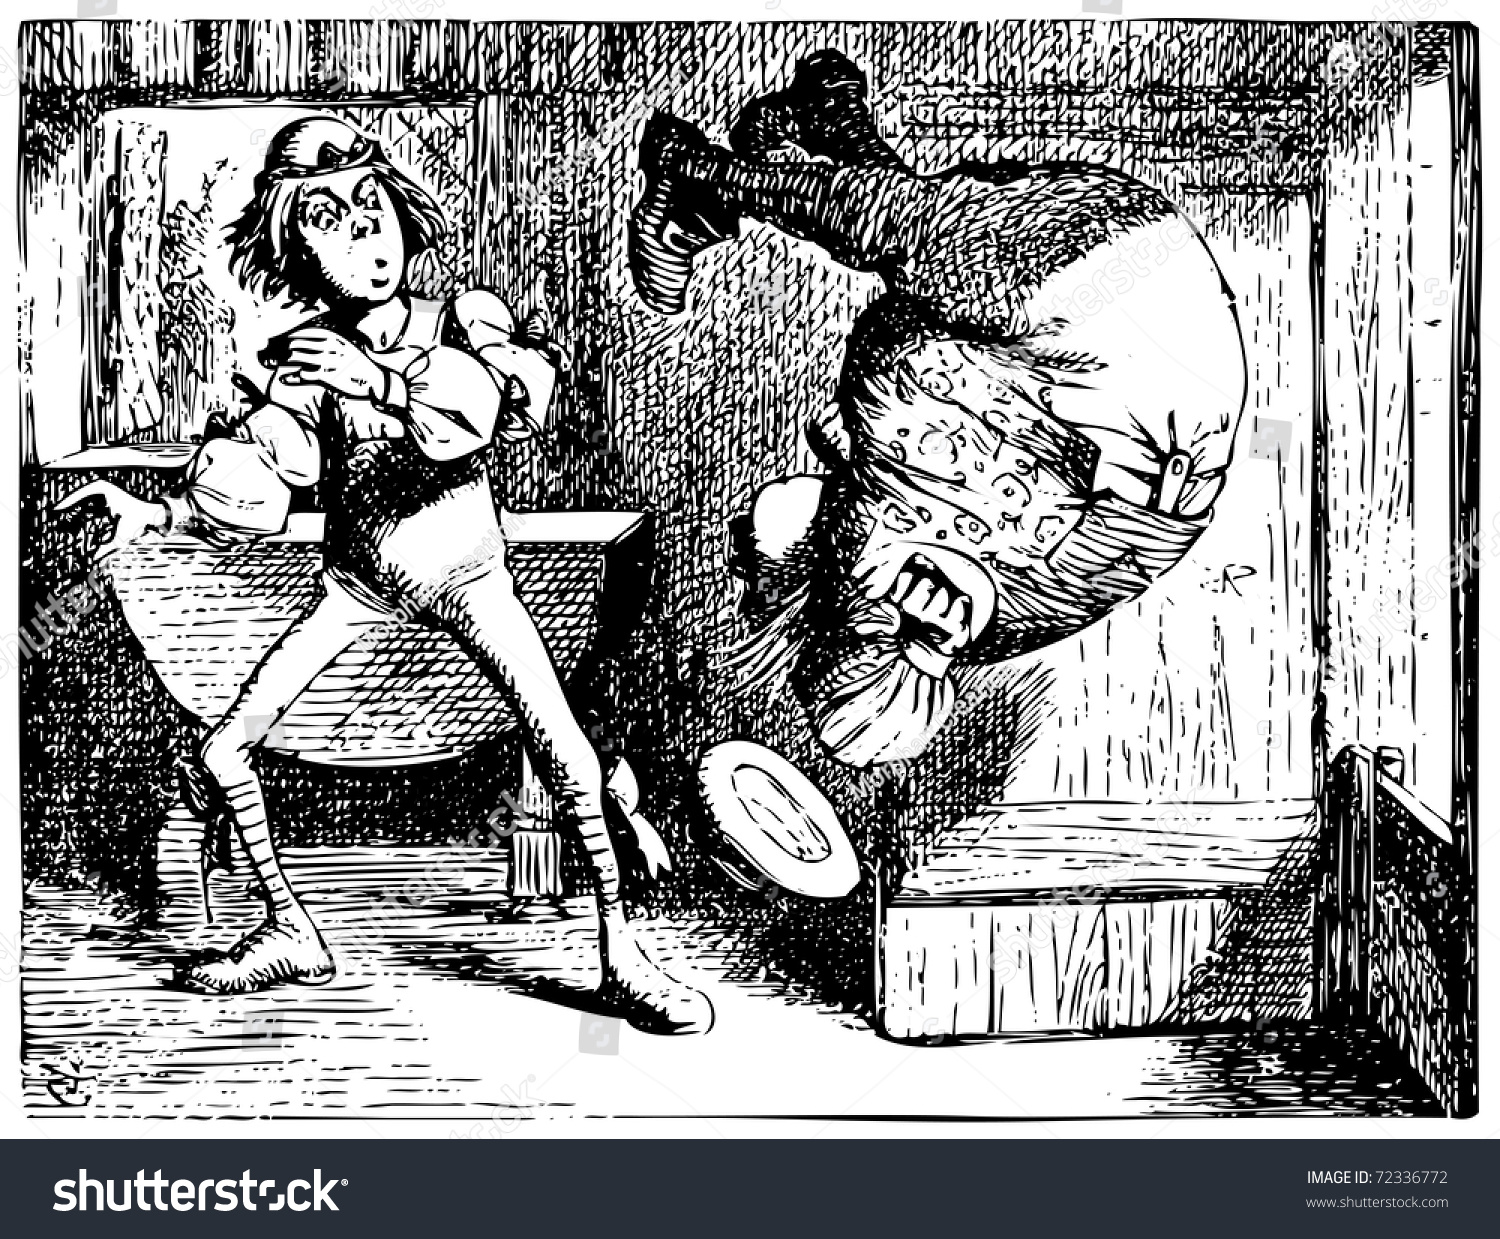 Alice In Wonderland Old Engraving Father William Jumping Or Doing A  Summersault: Alice's Adventures